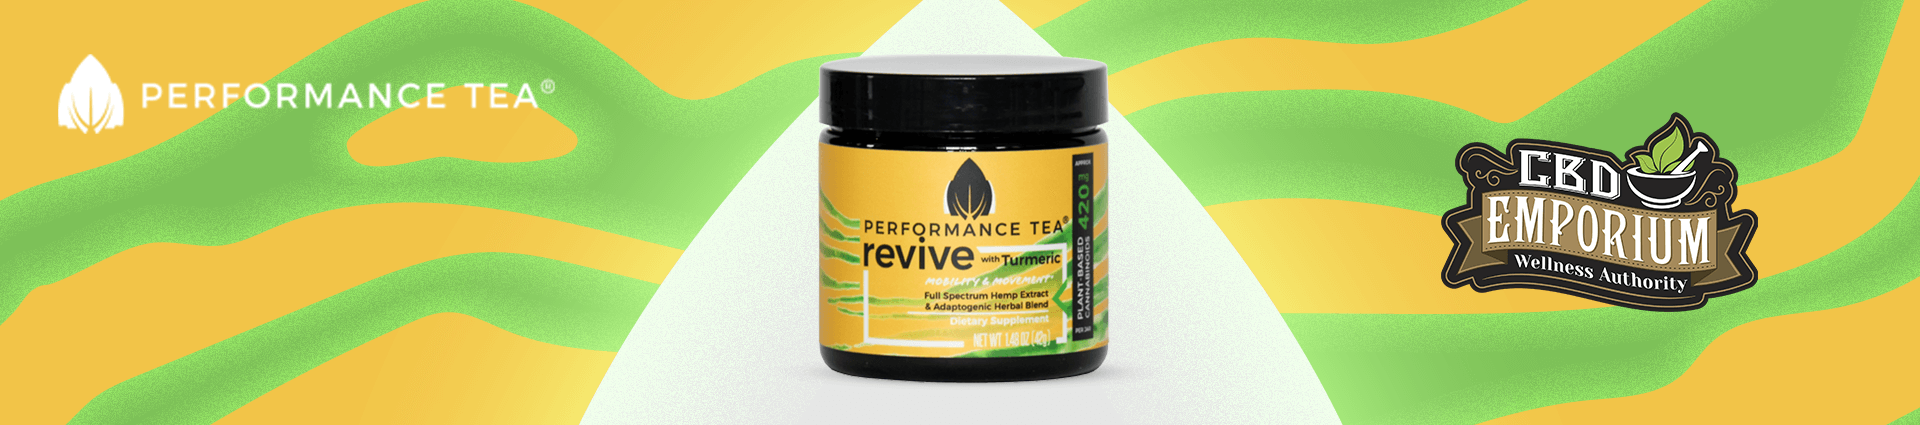 Revive Instant CBD Blend from Performance Tea